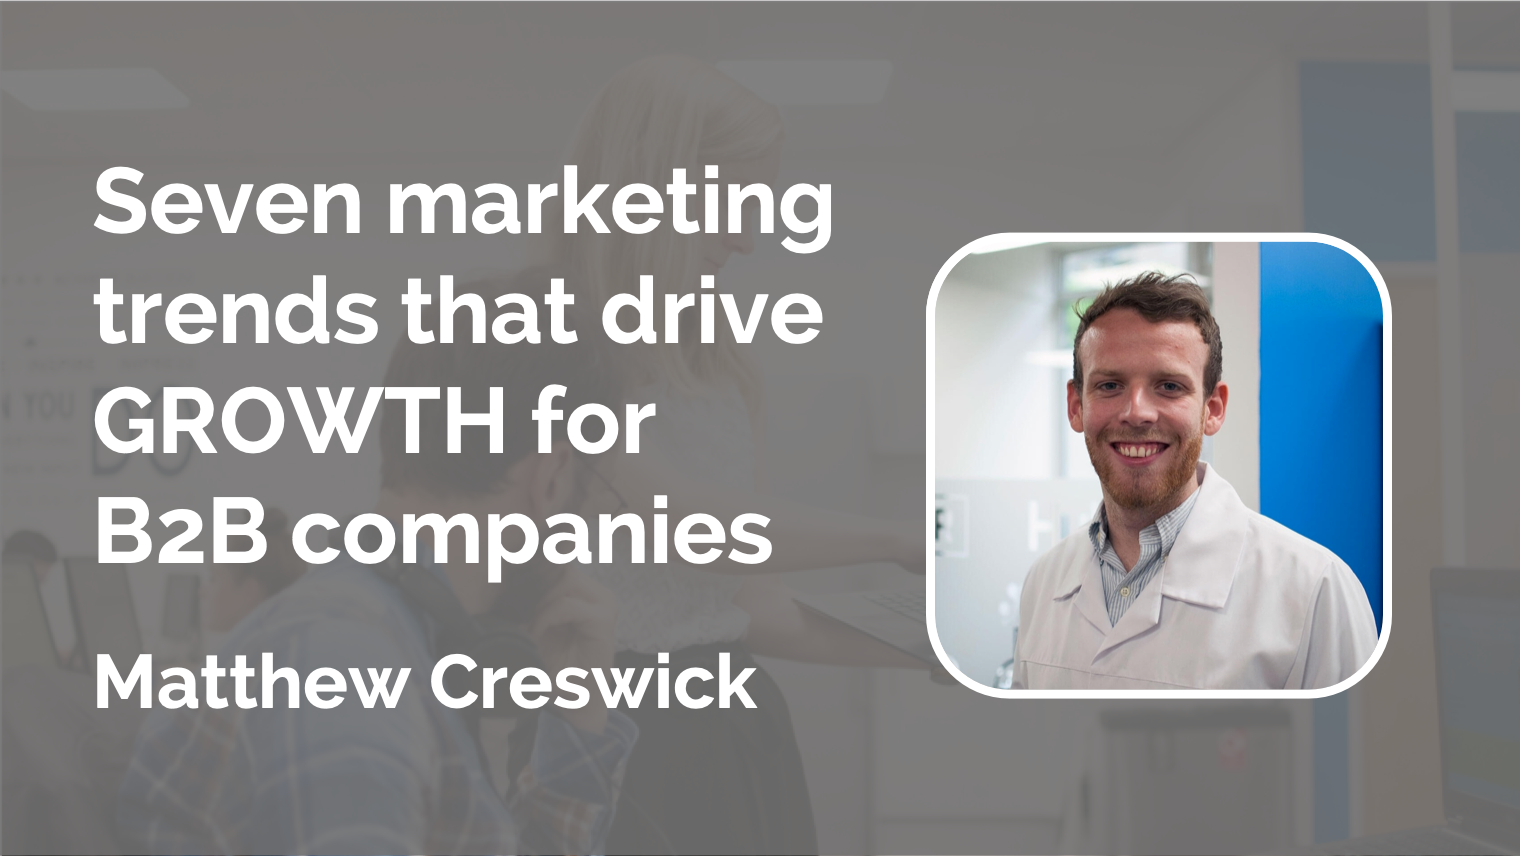 Seven marketing trends that drive growth for B2B companies